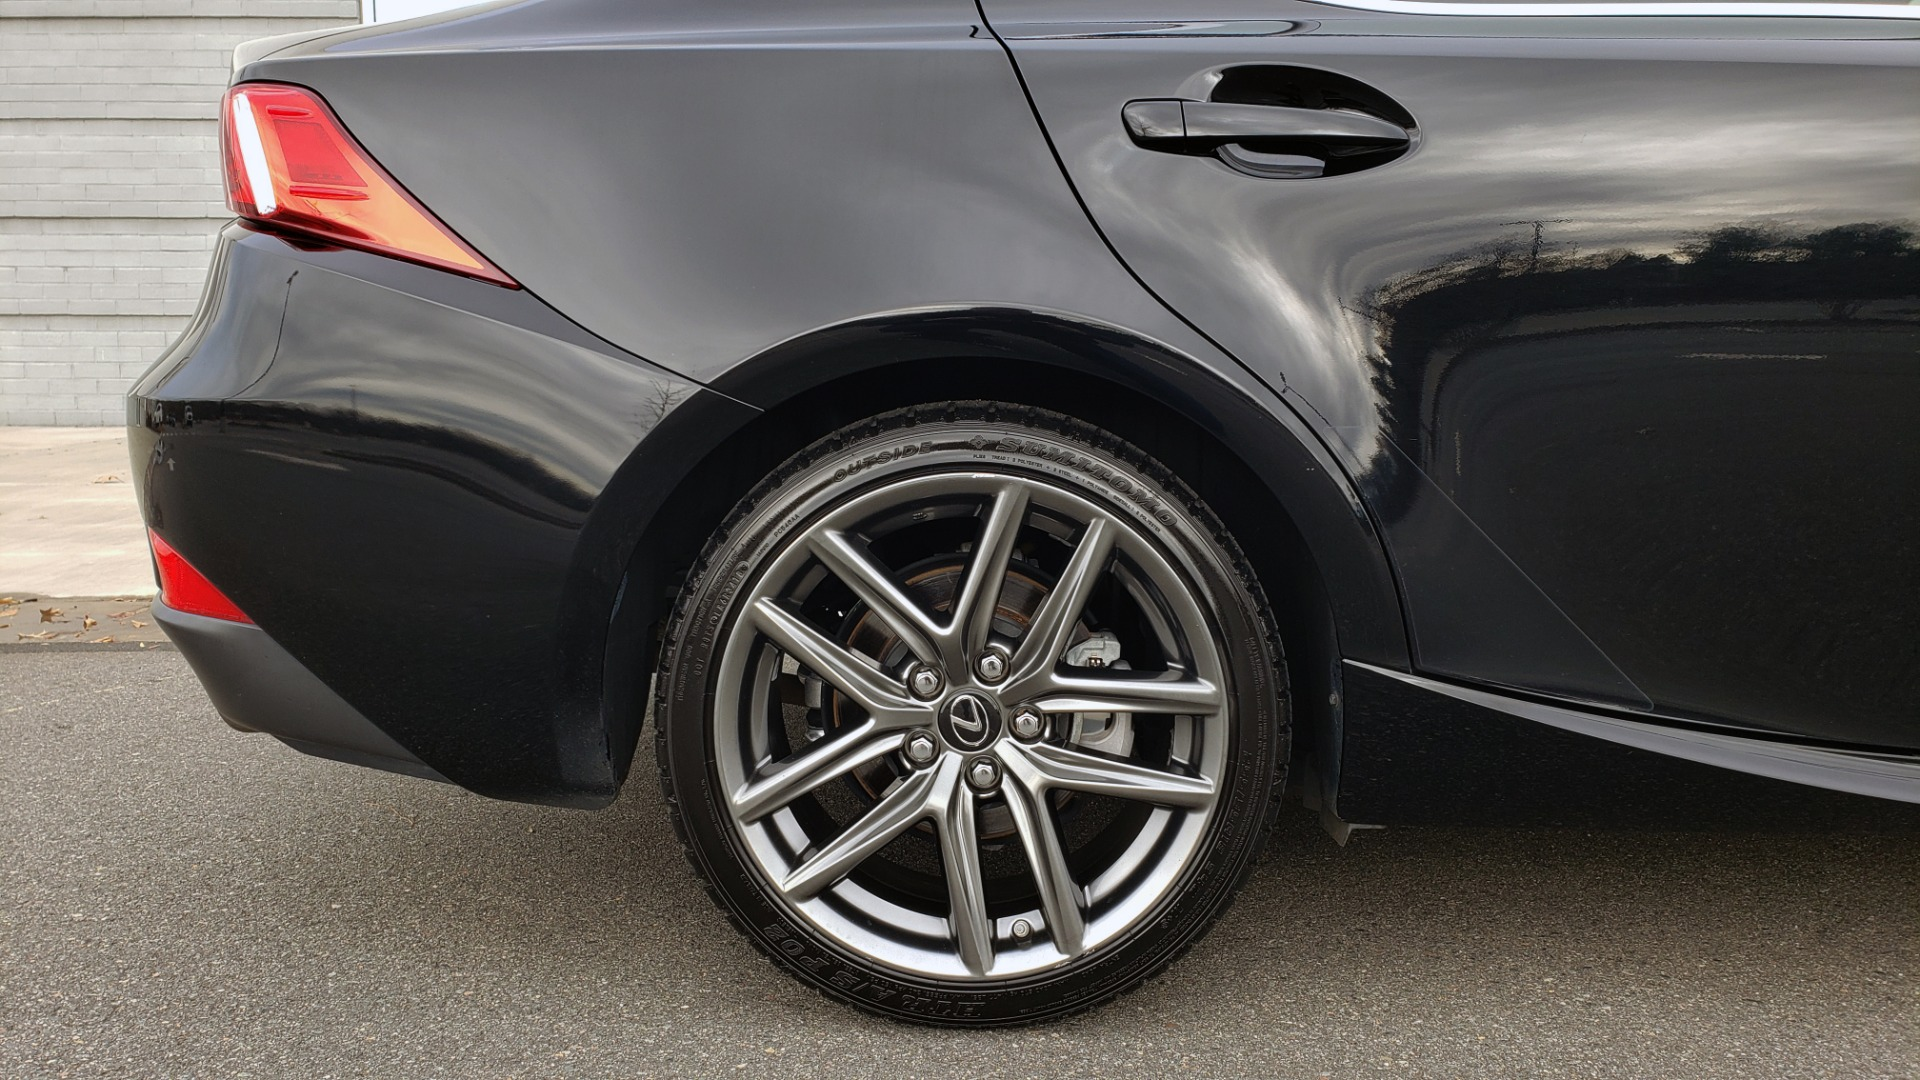 Used 2015 Lexus IS 250 F-SPORT / BLIND SPOT MON / SUNROOF / REARVIEW for sale Sold at Formula Imports in Charlotte NC 28227 79